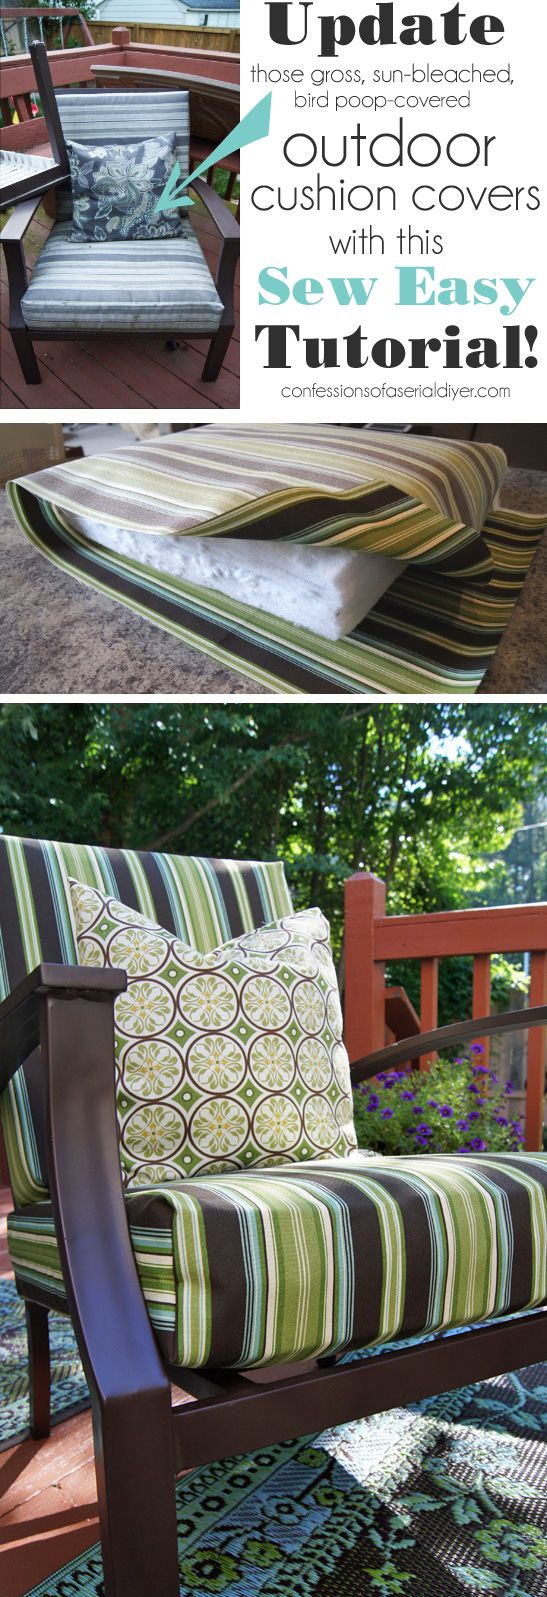 Sew Easy Outdoor Cushion Covers: Sew Easy Outdoor Cushion Covers {Oldie  but Goodie}   Confessions    ,